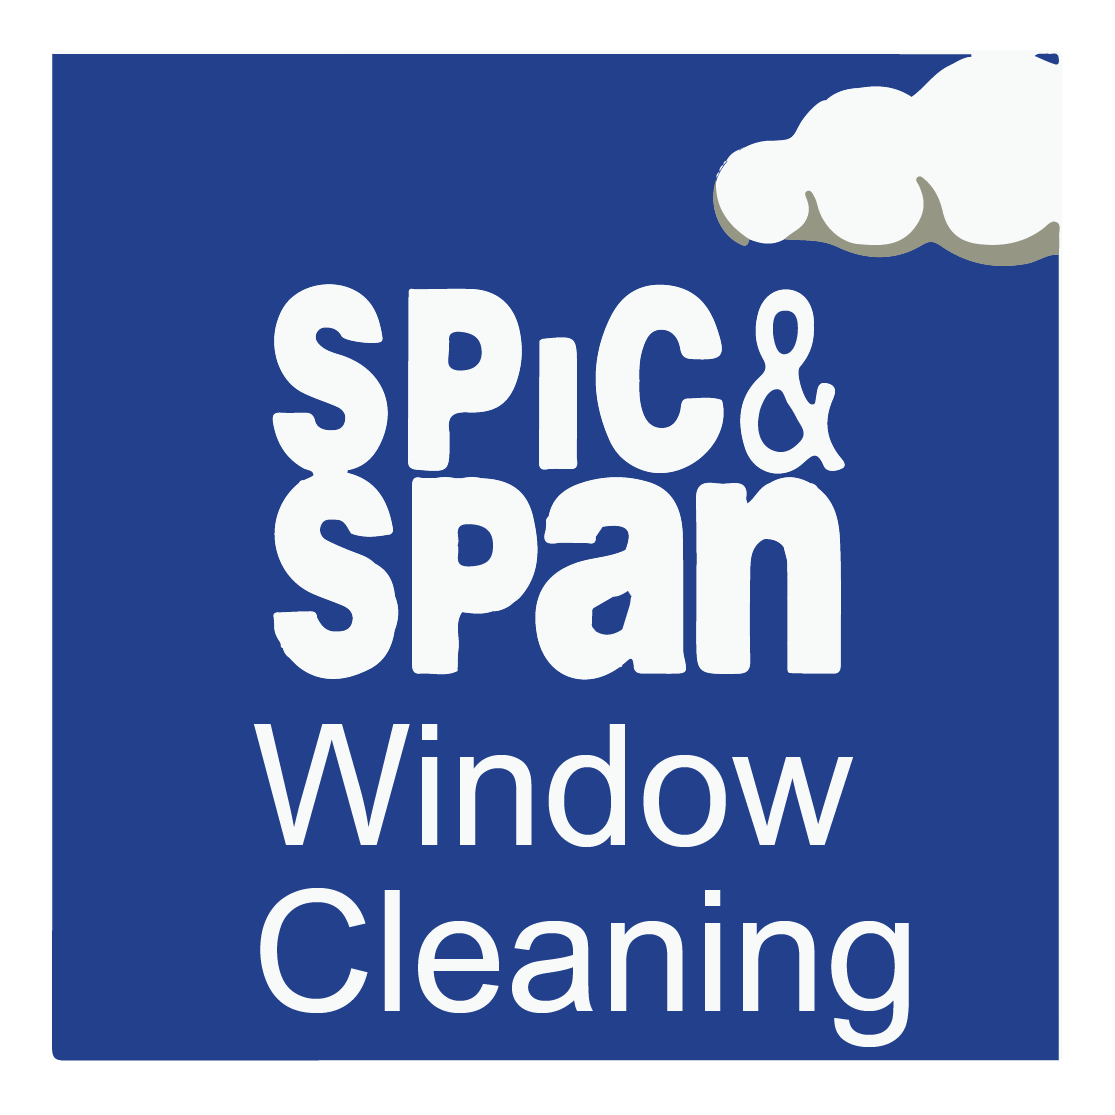 Spic & Span Window Cleaning